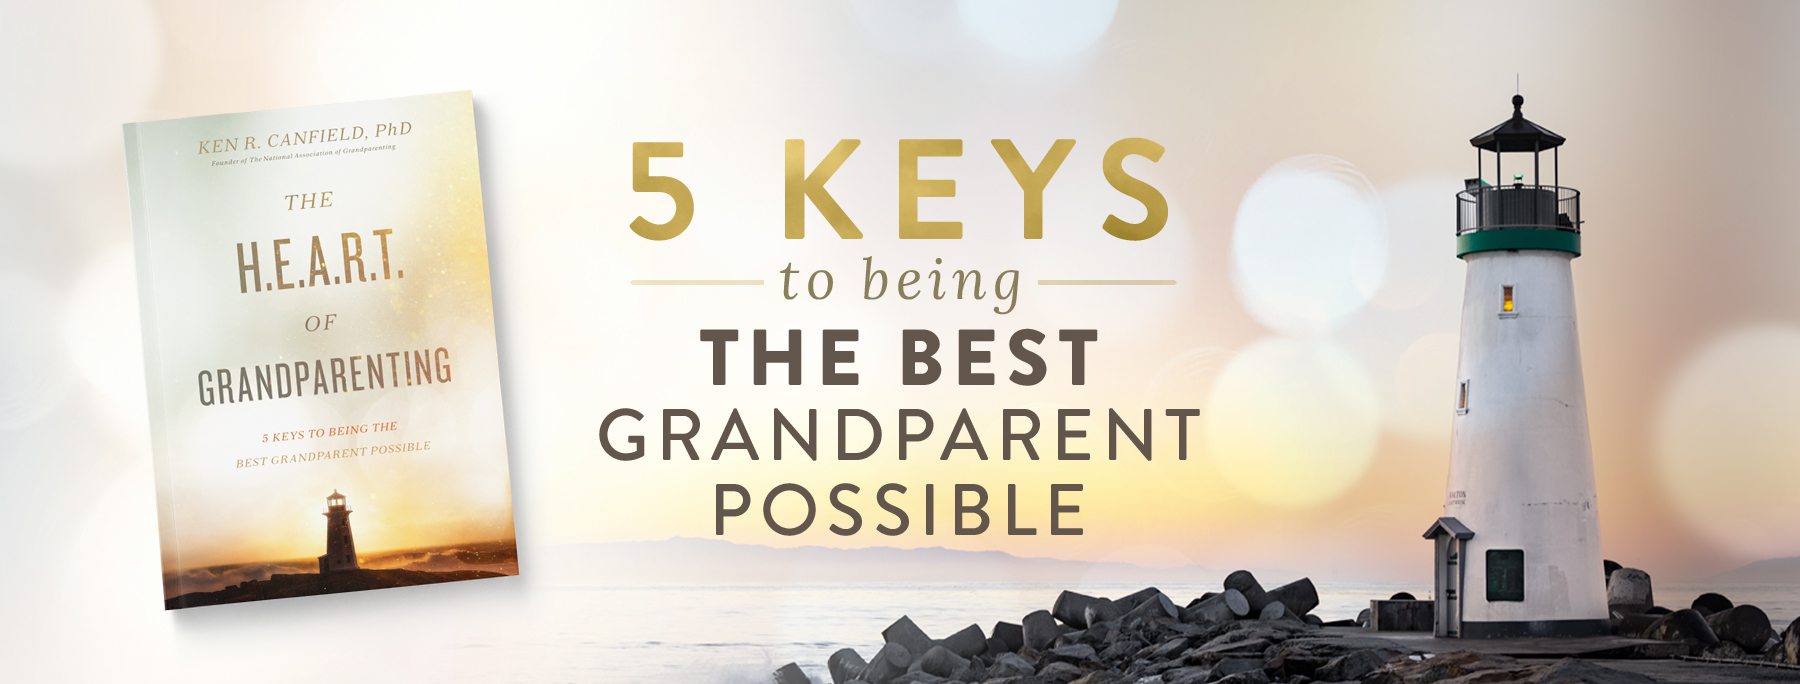 5 Keys to Being the Best Grandparent from the H.E.A.R.T. of Grandparenting